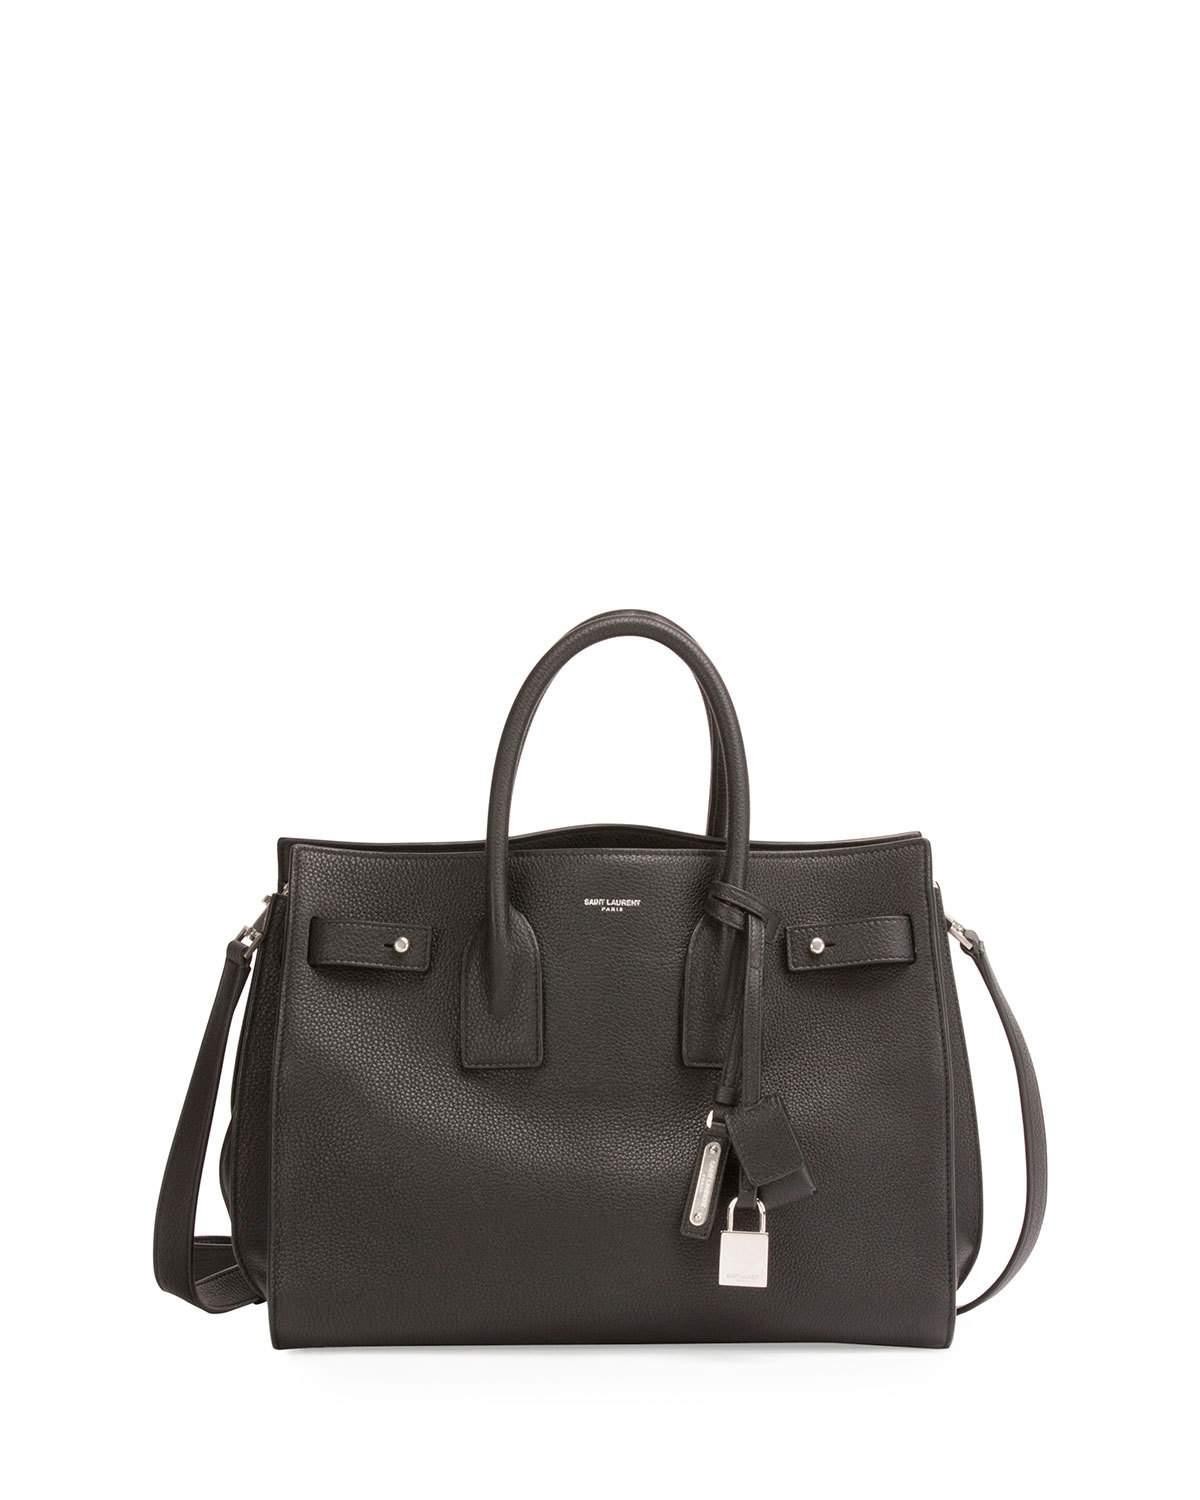 Saint Laurent Sac De Jour Small Supple Leather Bag In